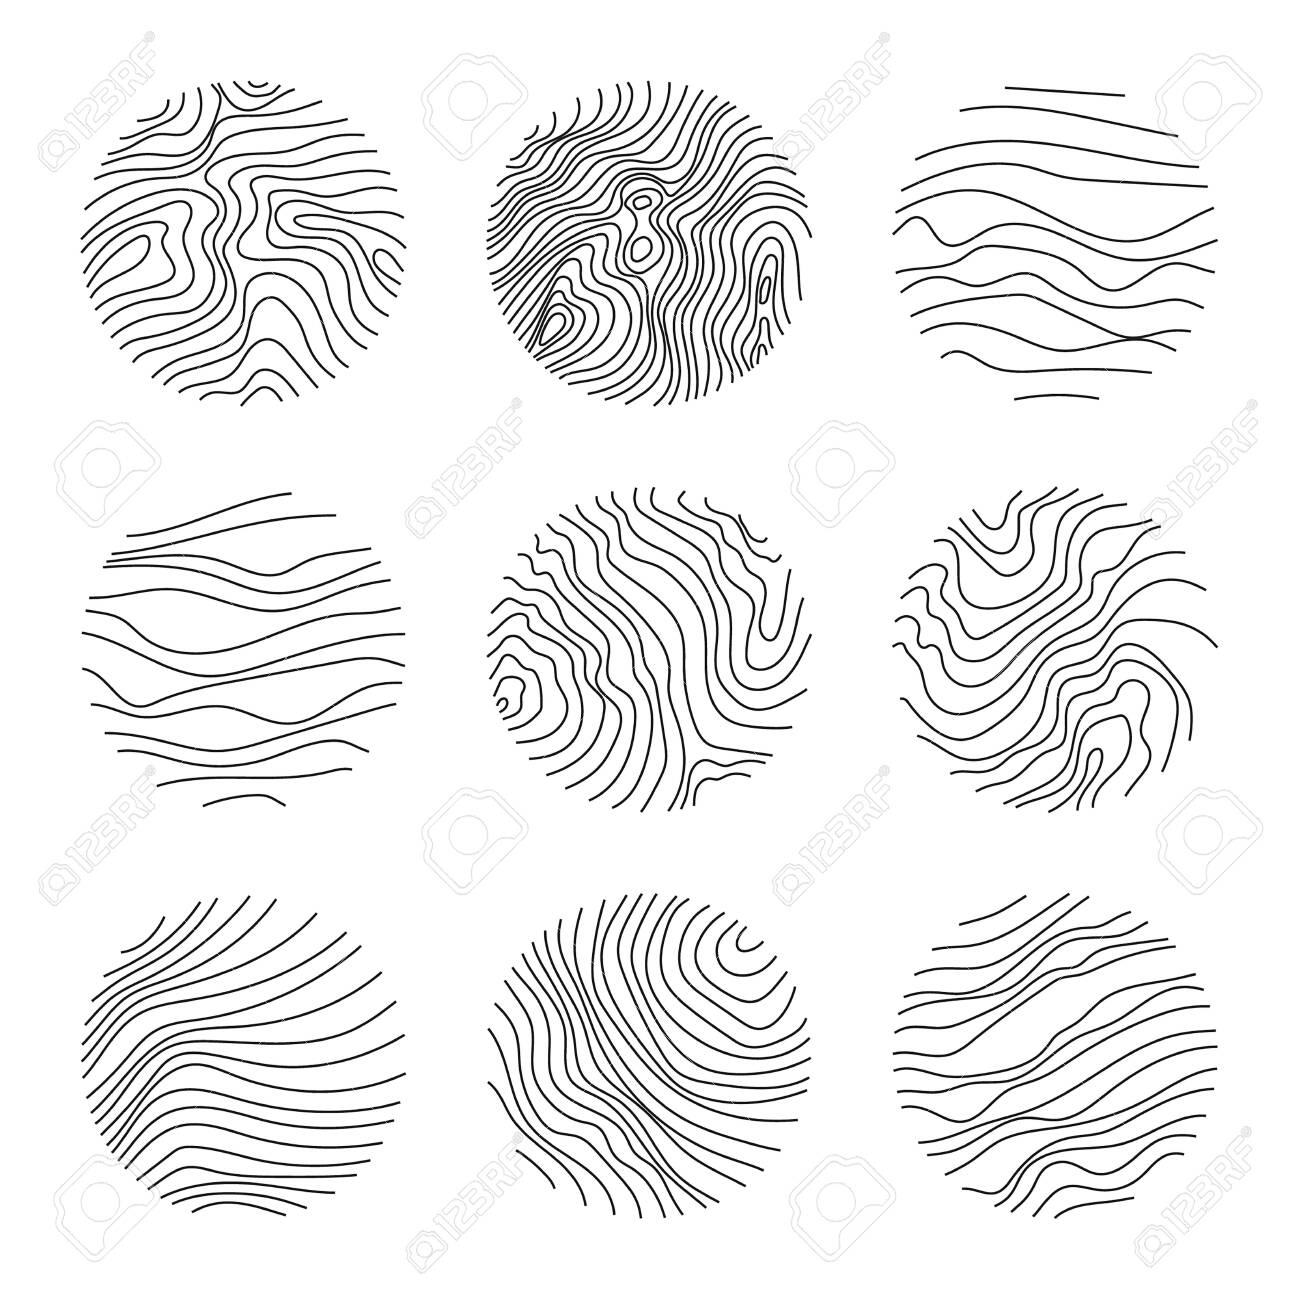 Set of round modern minimal with organic shapes with dynamic waves and lines. Vector emblem for cosmetics, beauty industry. Hand drawn templates black color. - 150599630